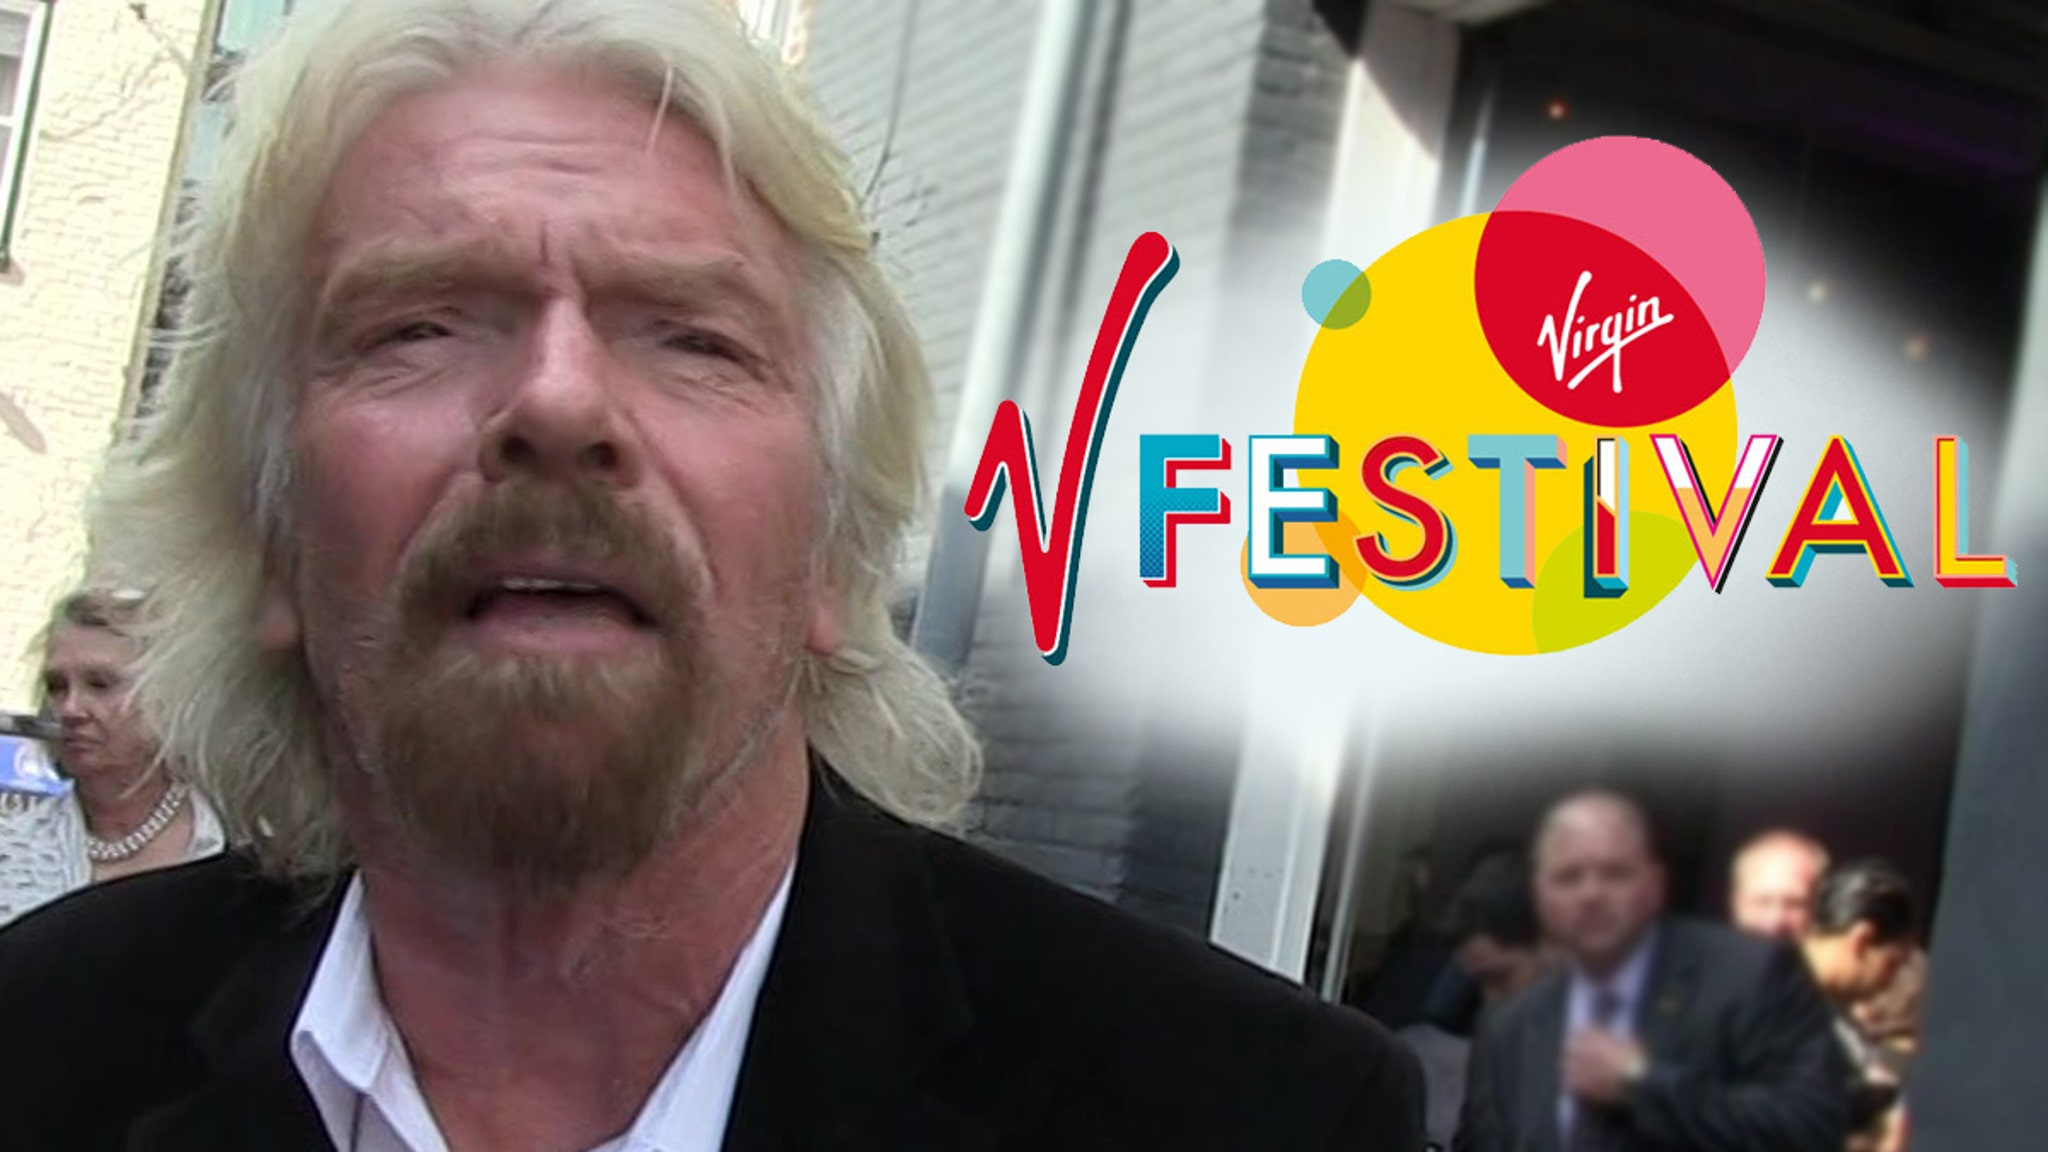 Richard Branson's Virgin Fest Co. Sued for Sucking Biz Partner Dry - TMZ